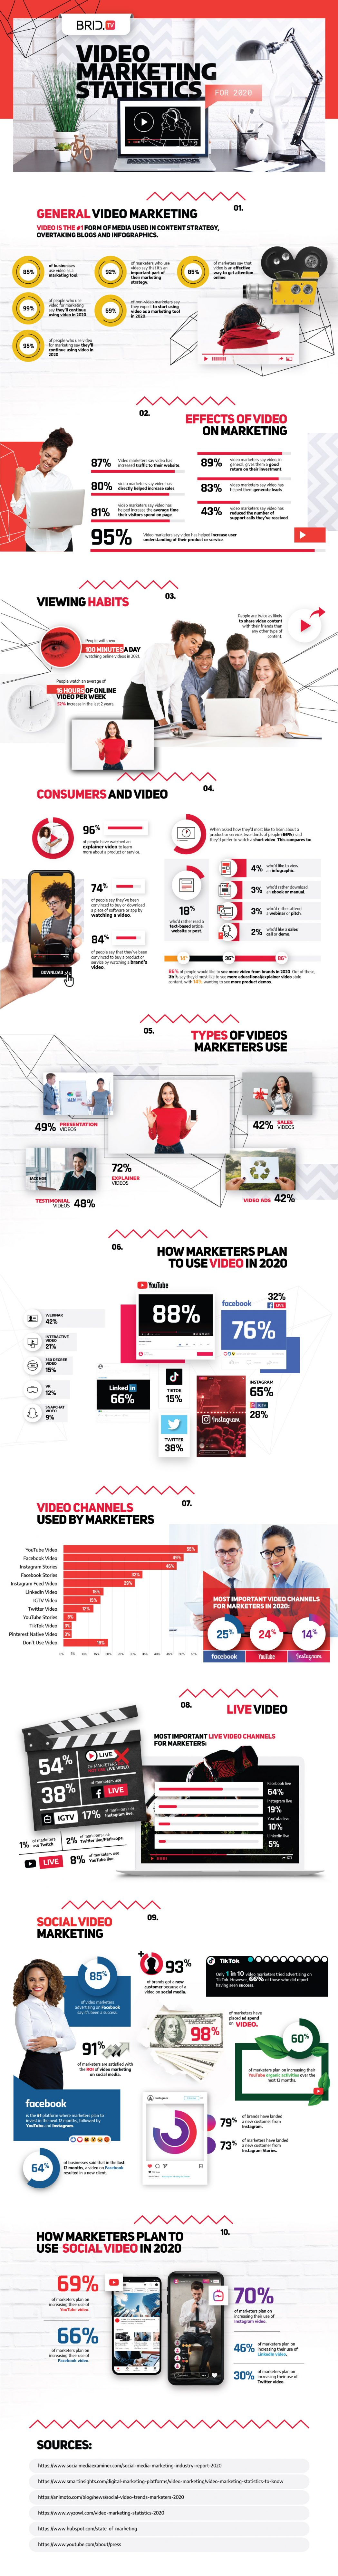 video marketing statistics 2020 infographic